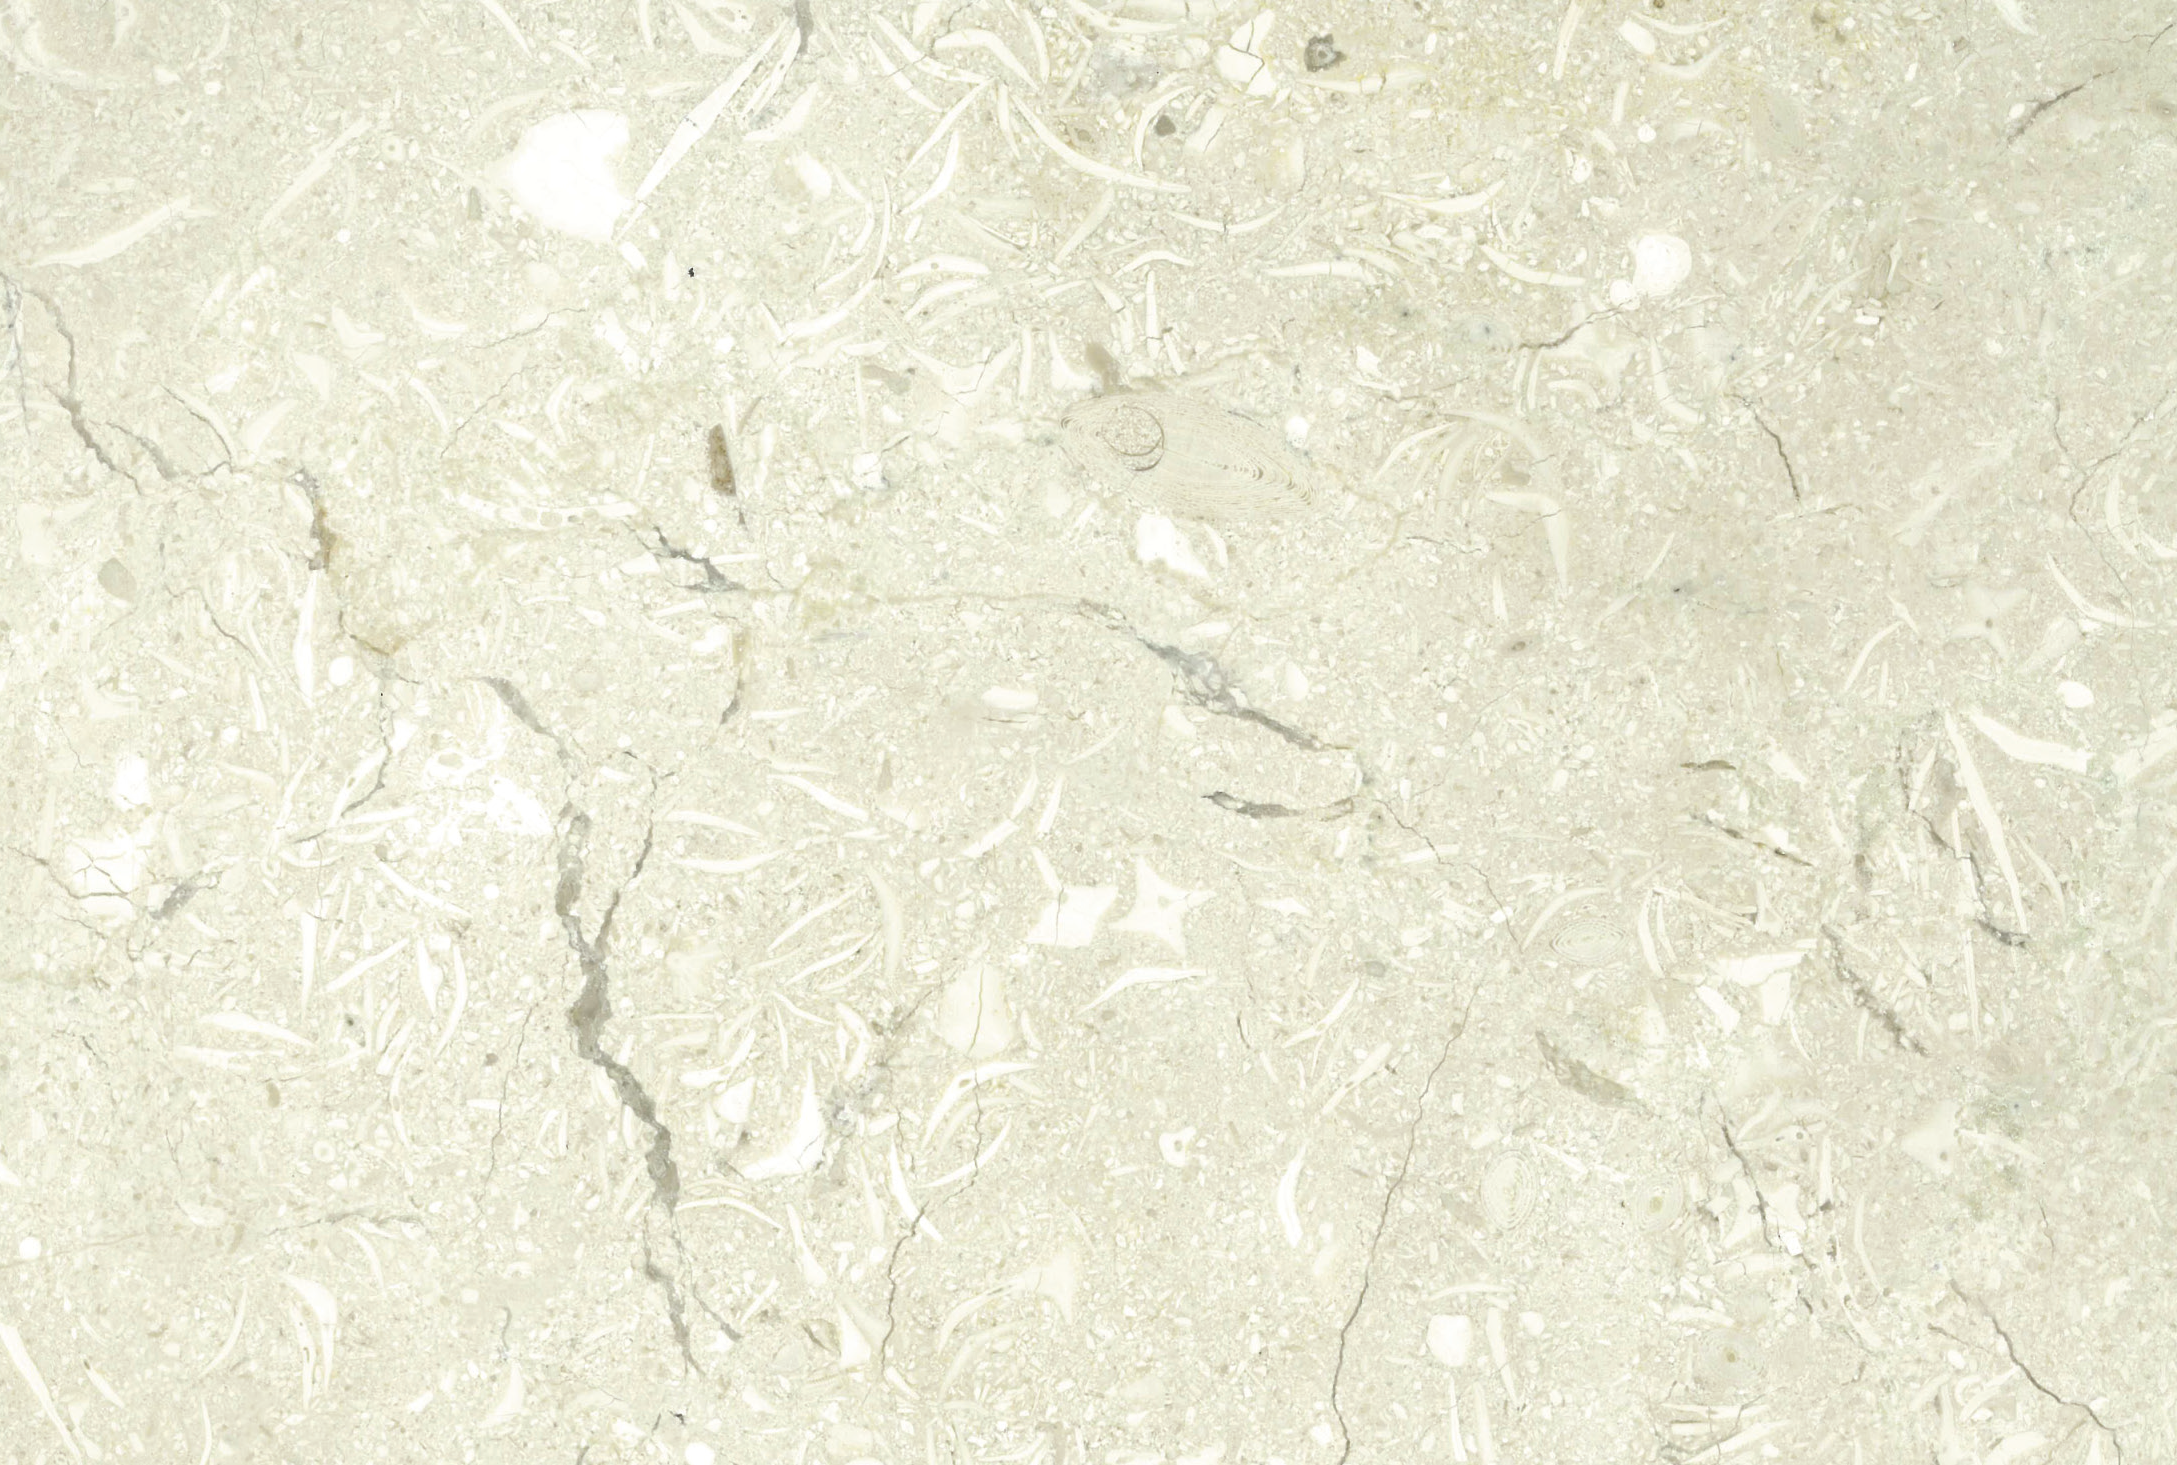 Reach Holy Land - Marble & Stone : Our Marble & Stone Collection - RH 11 - Cold Ice